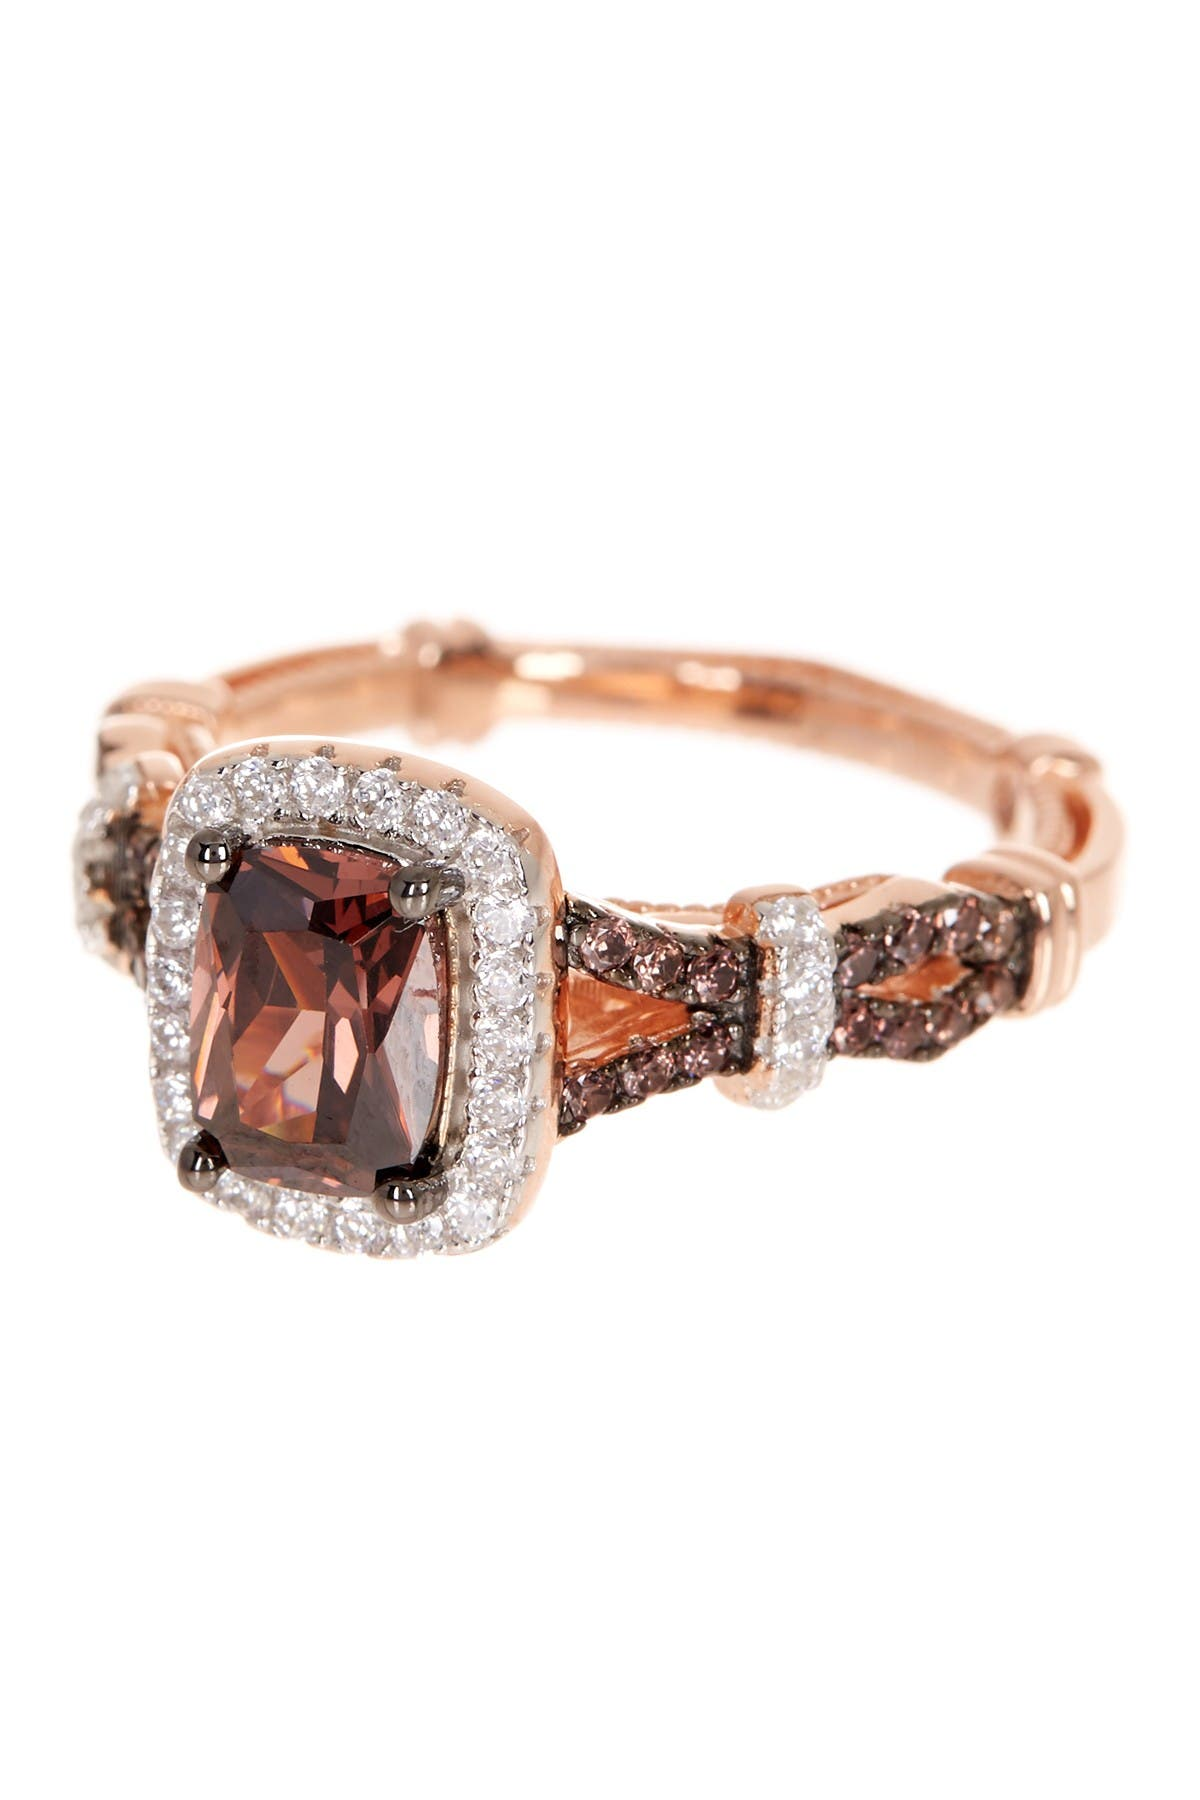 Image of Suzy Levian Pink Rhodium Plated Sterling Silver Brown & White CZ Engagement Ring